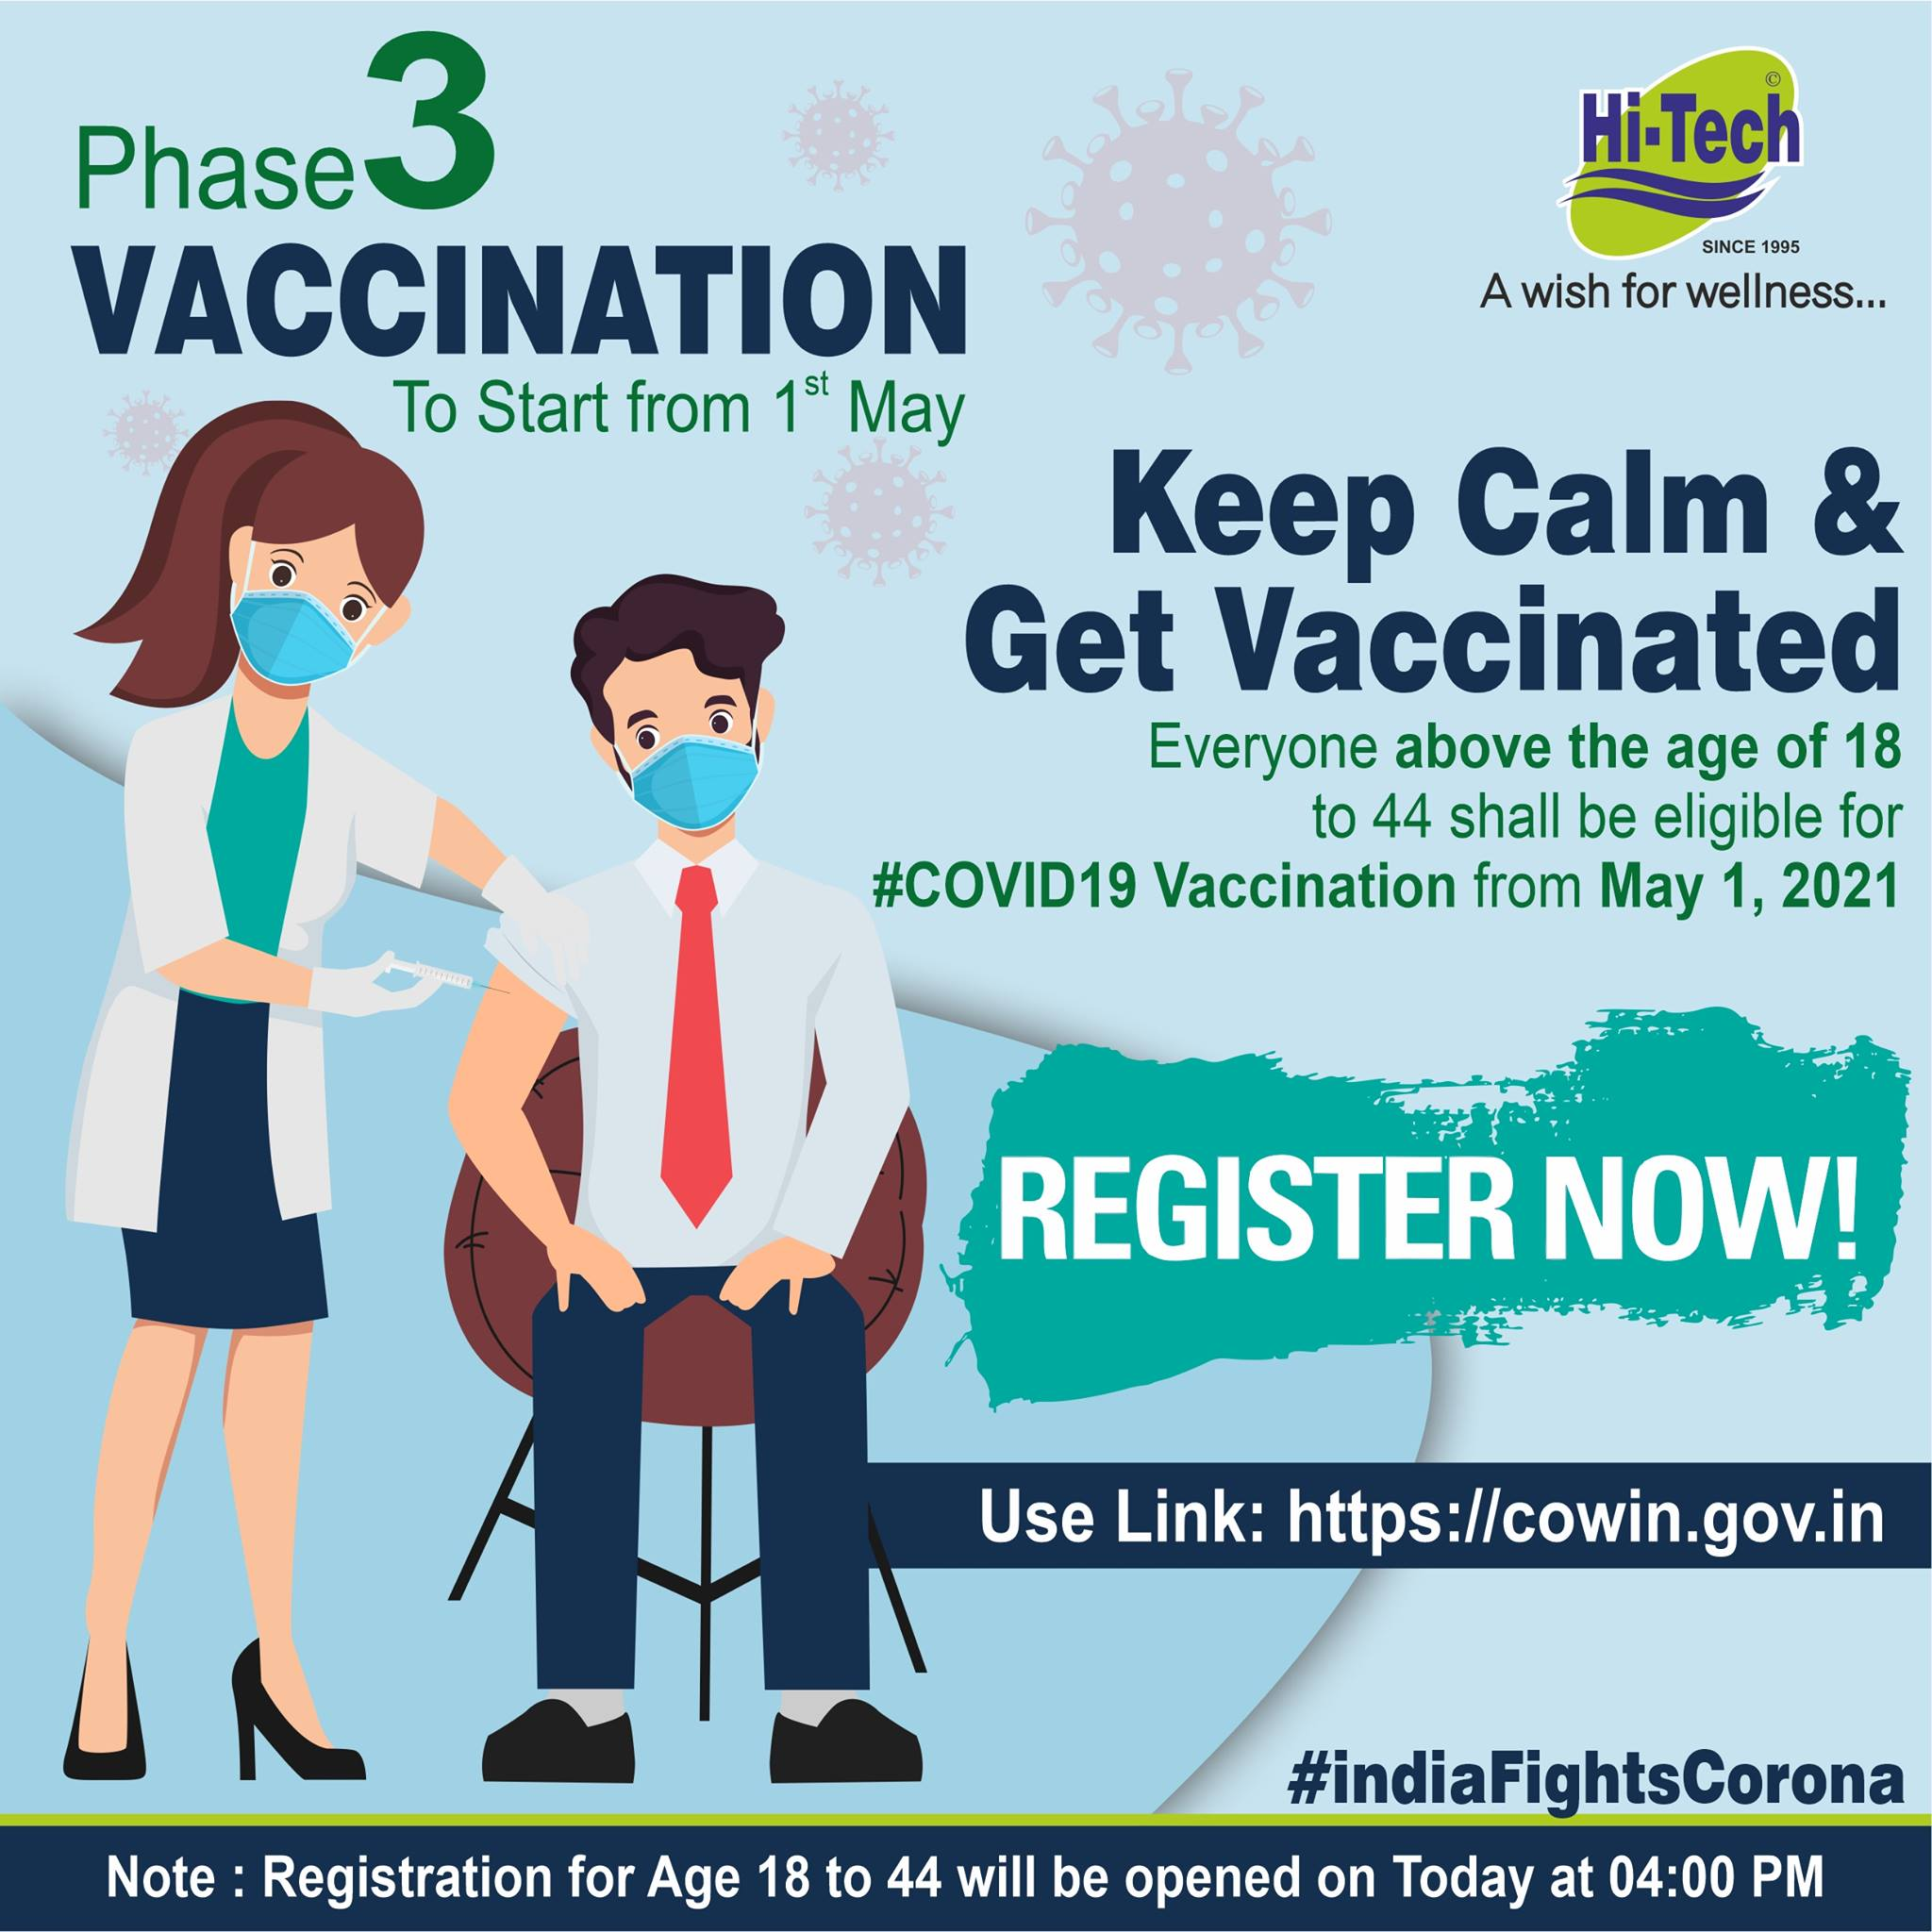 COVID vaccination for the 18+ to 45 year age group